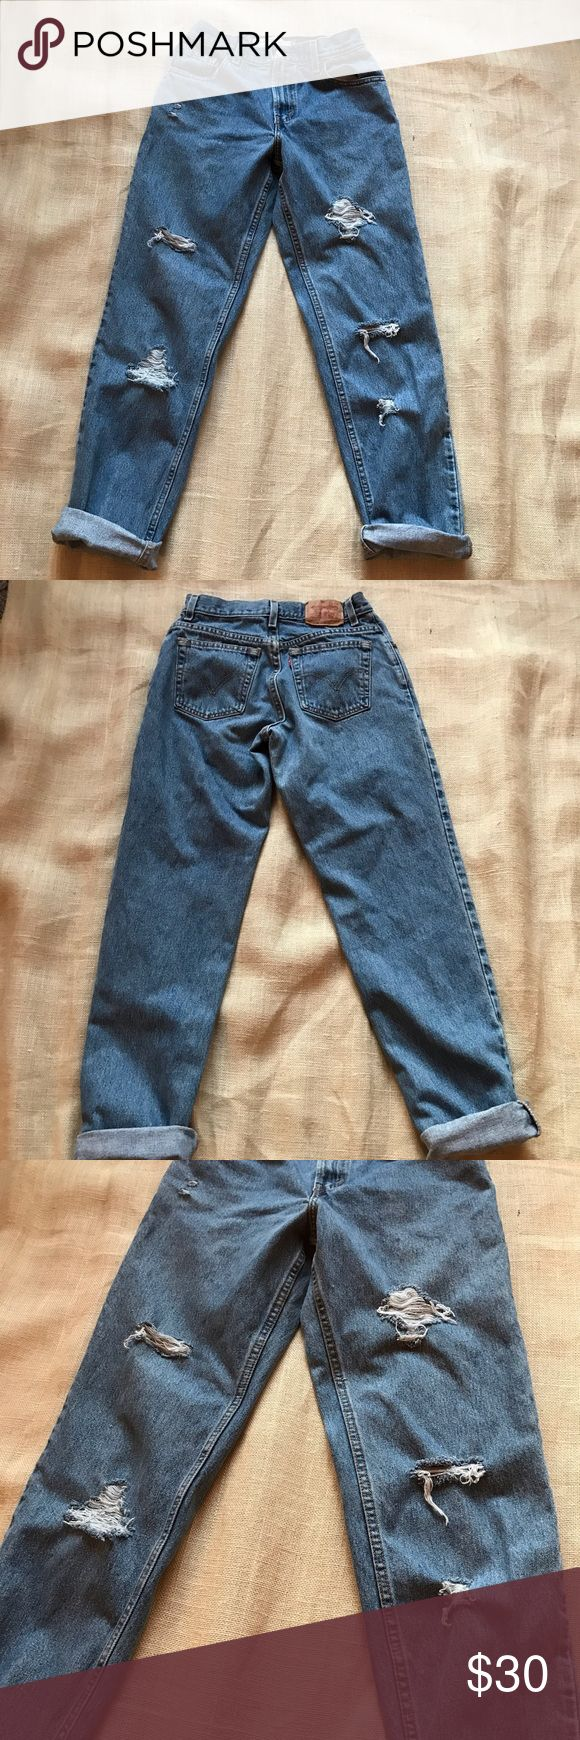 """Levi's 550 High Waisted Distressed Jeans Levi's 550 • Relaxed Fit, Tapered and Distressed Legs, High Waisted Great vintage fit, but clearly not with the .com on the tag lol 😂   Tag Says 6 M Fit like a 26/28 imo  Waist 13"""" Hips 19"""" Rise 11"""" Inseam 31"""" Levi's Jeans Boyfriend"""